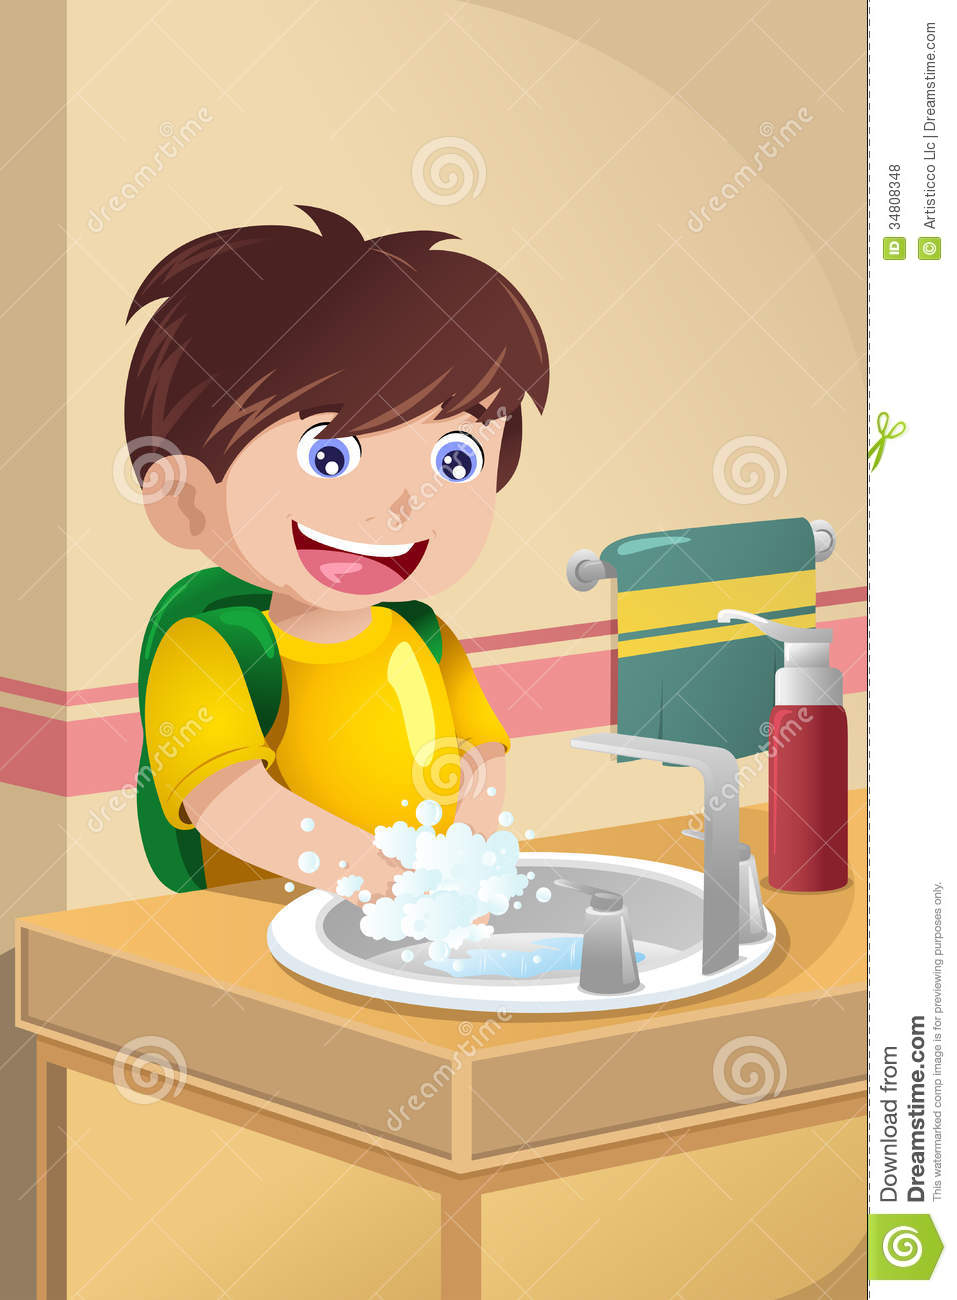 Child washing hands clipart clip art stock Clipart kids washing hands - ClipartFest clip art stock